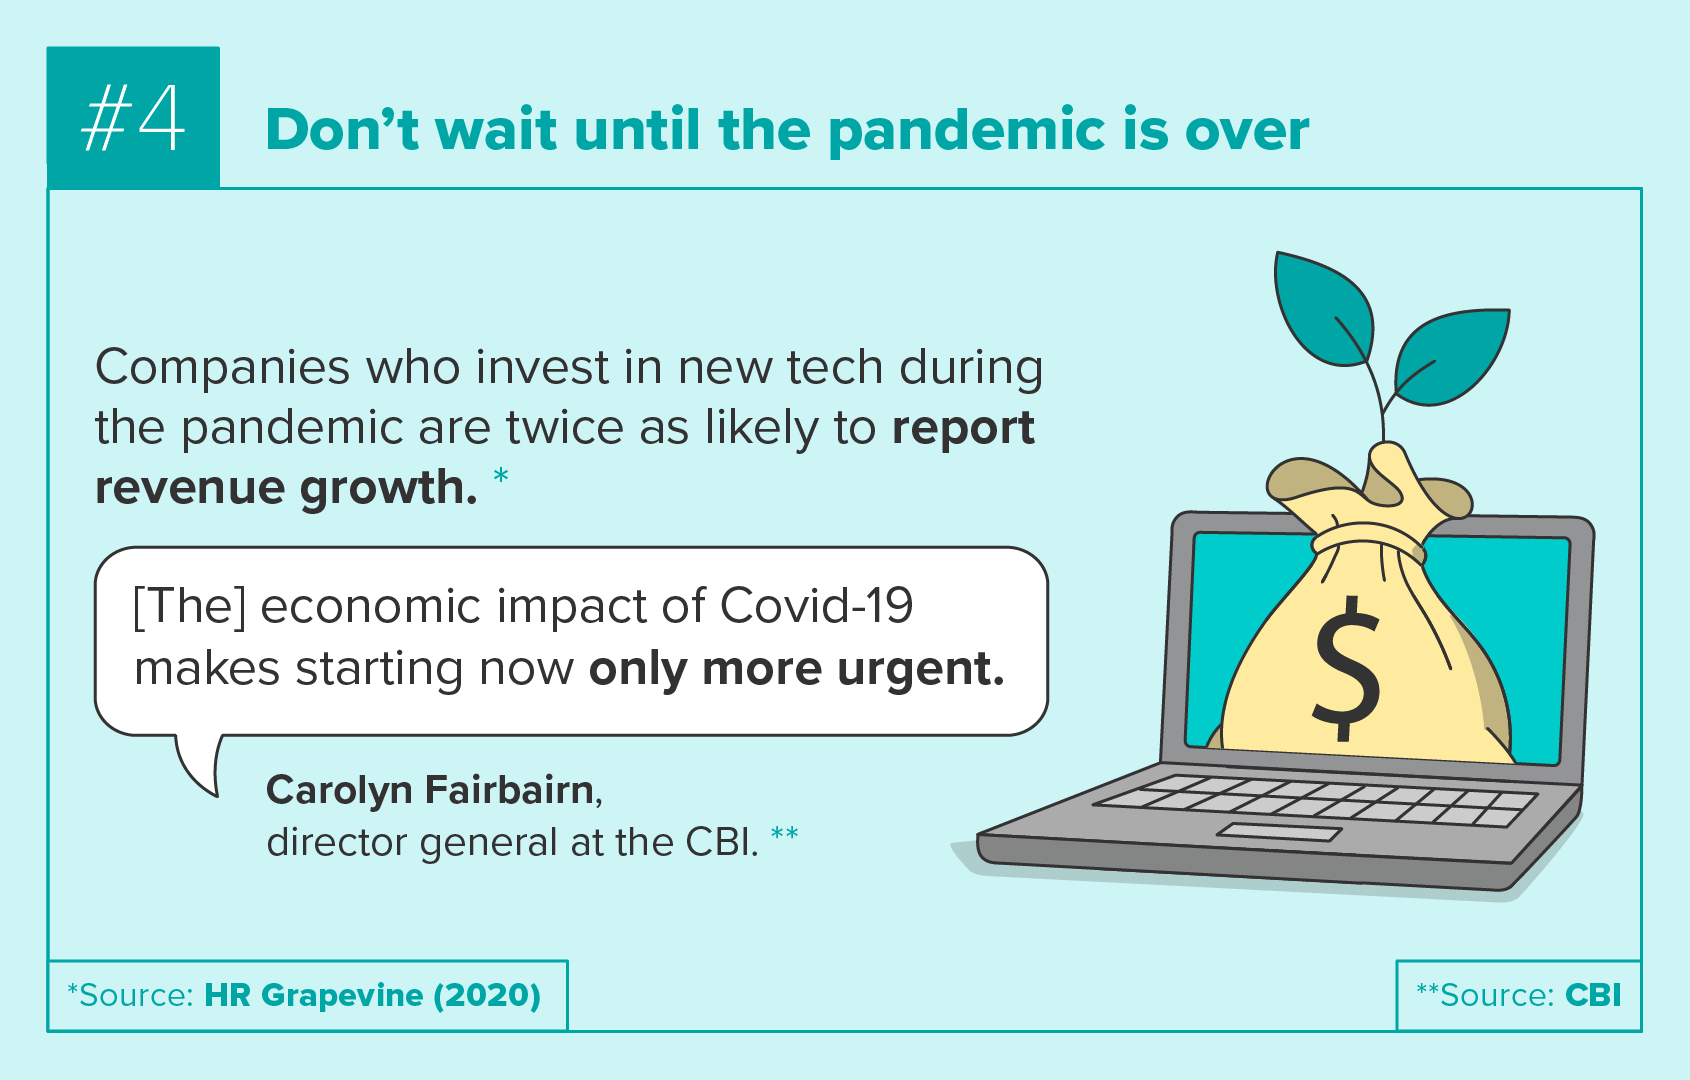 Don't wait until the pandemic is over